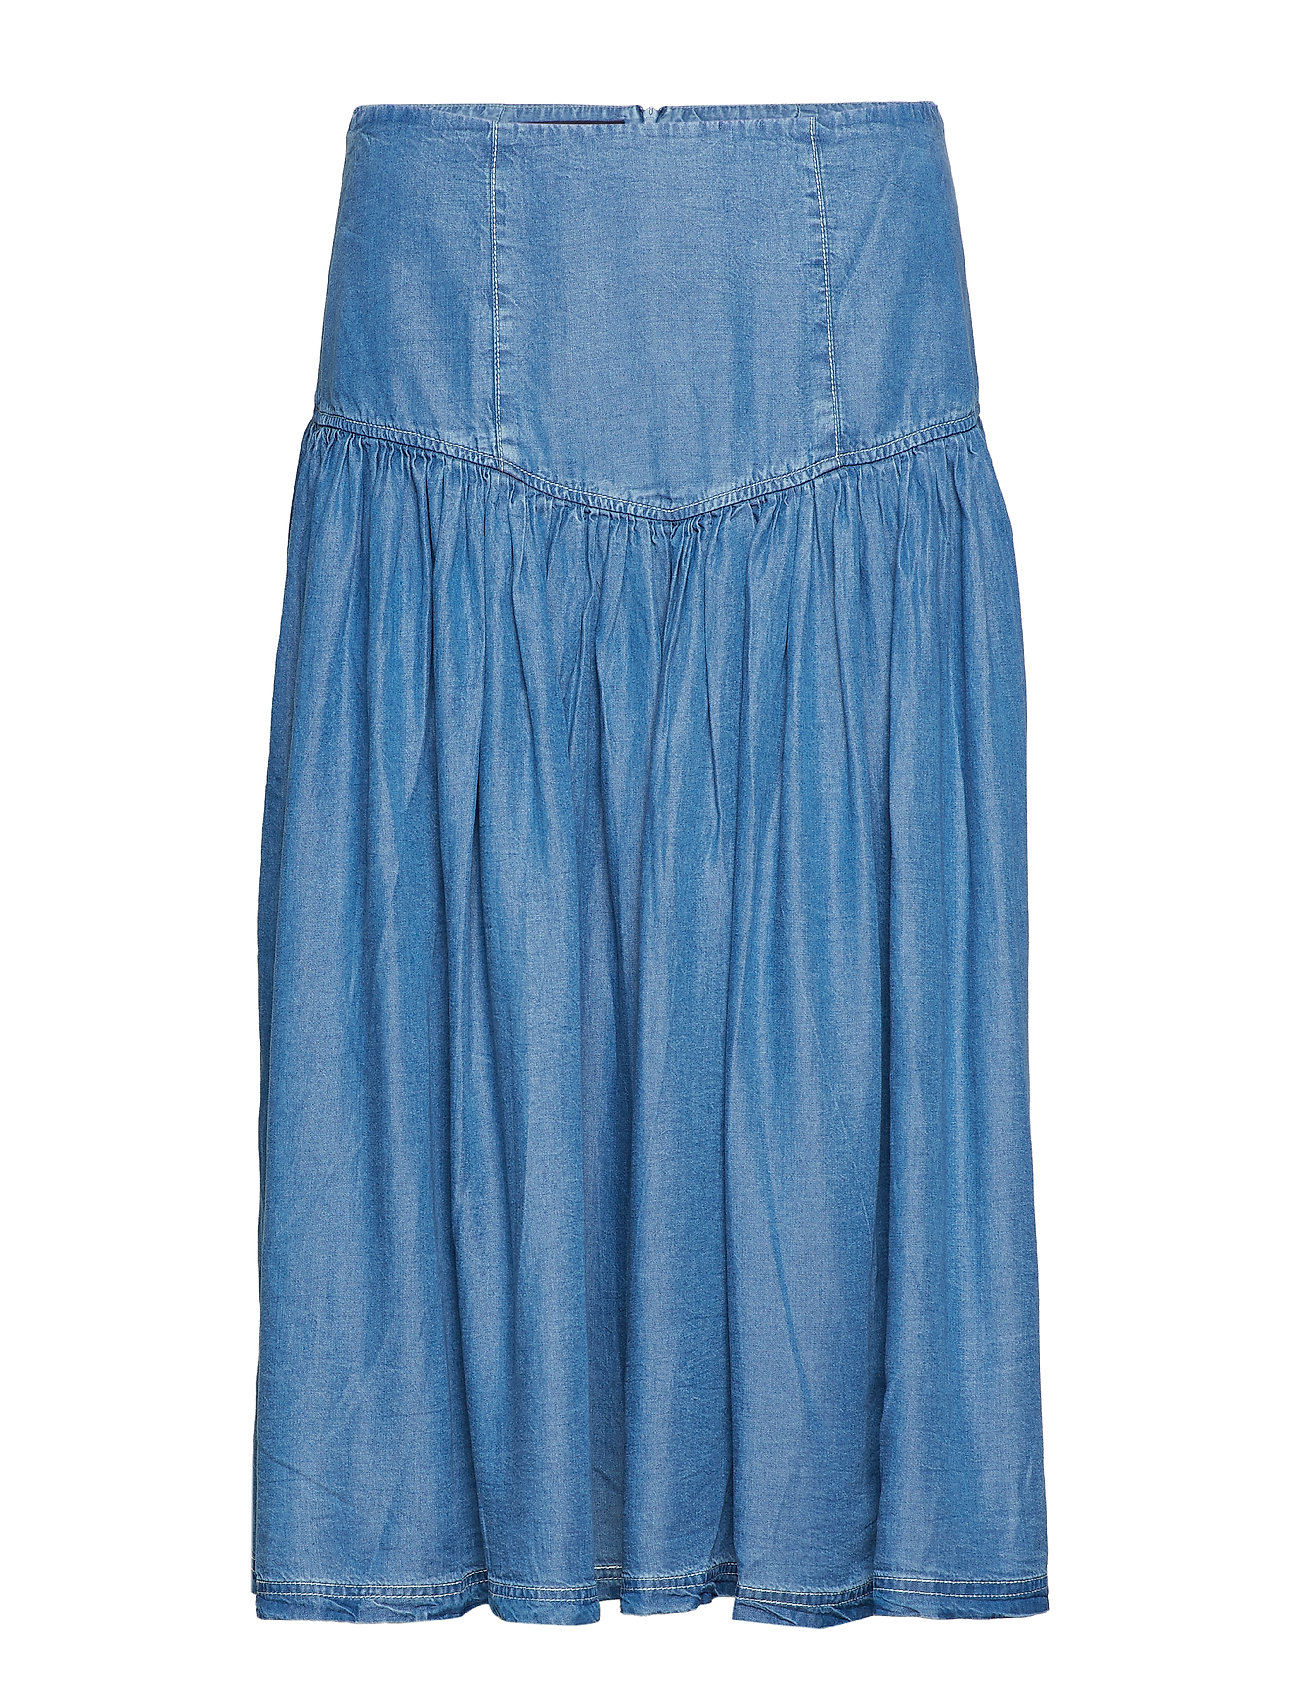 DESIGNERS, REMIX Camden Skirt - MEDIUM DENIM